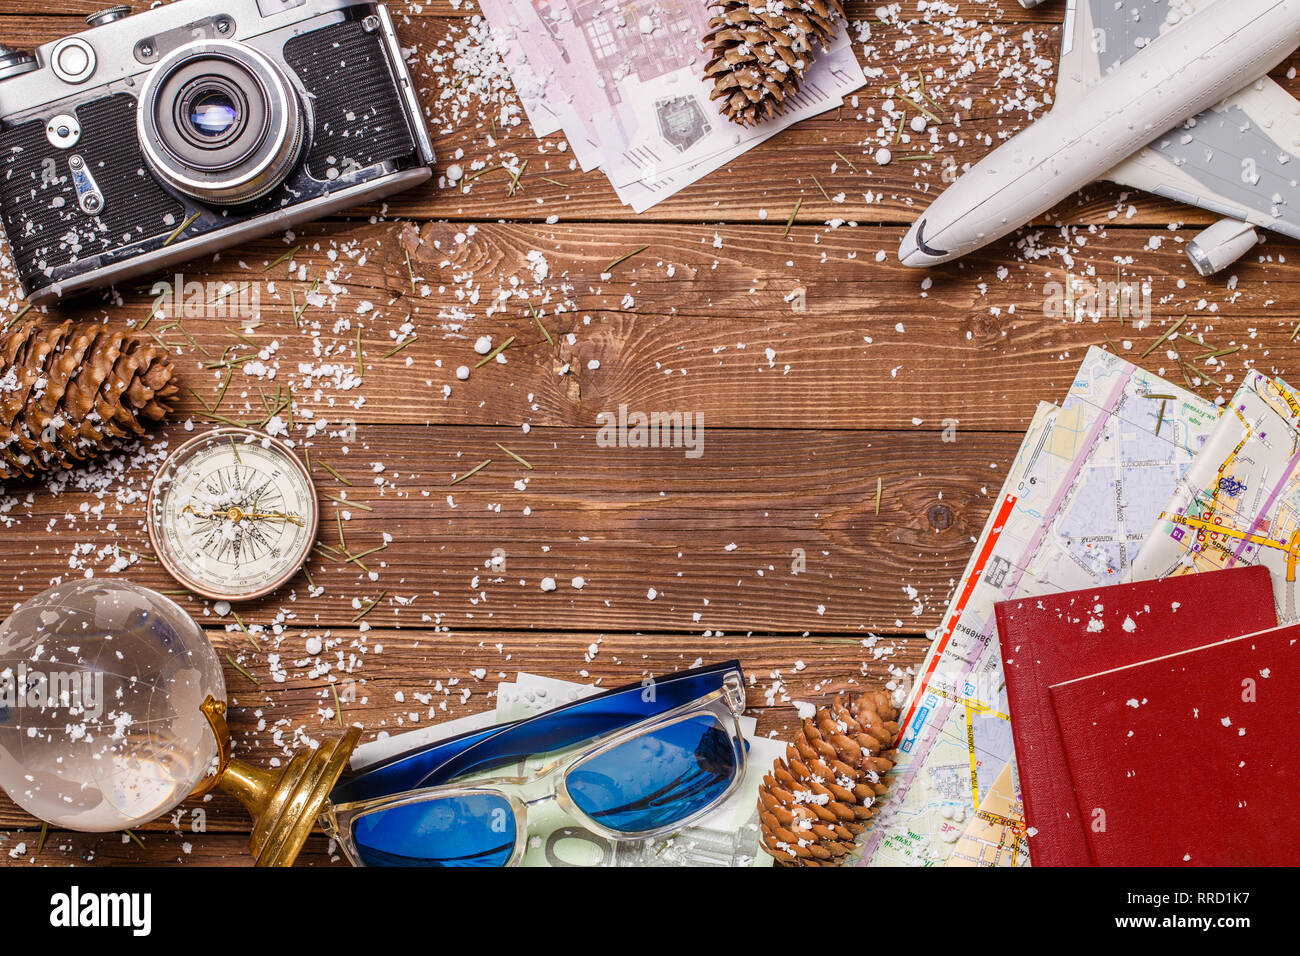 Traveler's attributes on wooden table - Stock Image